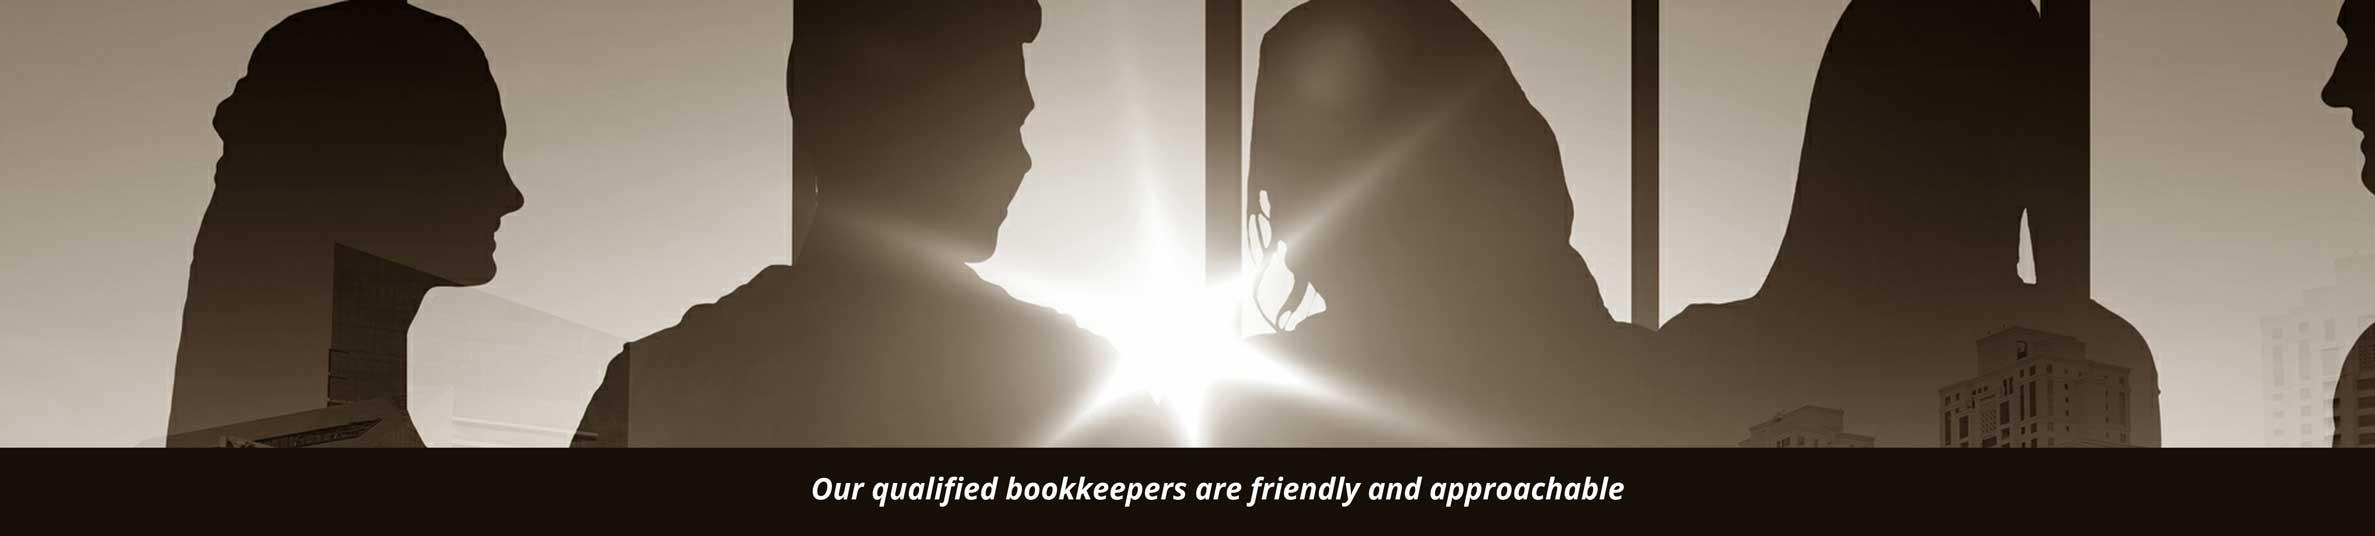 Our People | Strictly Bookkeeping | Brisbane Australia | Bookkeeping Services | Payroll | Debtor | Creditor | BAS | Bookkeeping Professionals